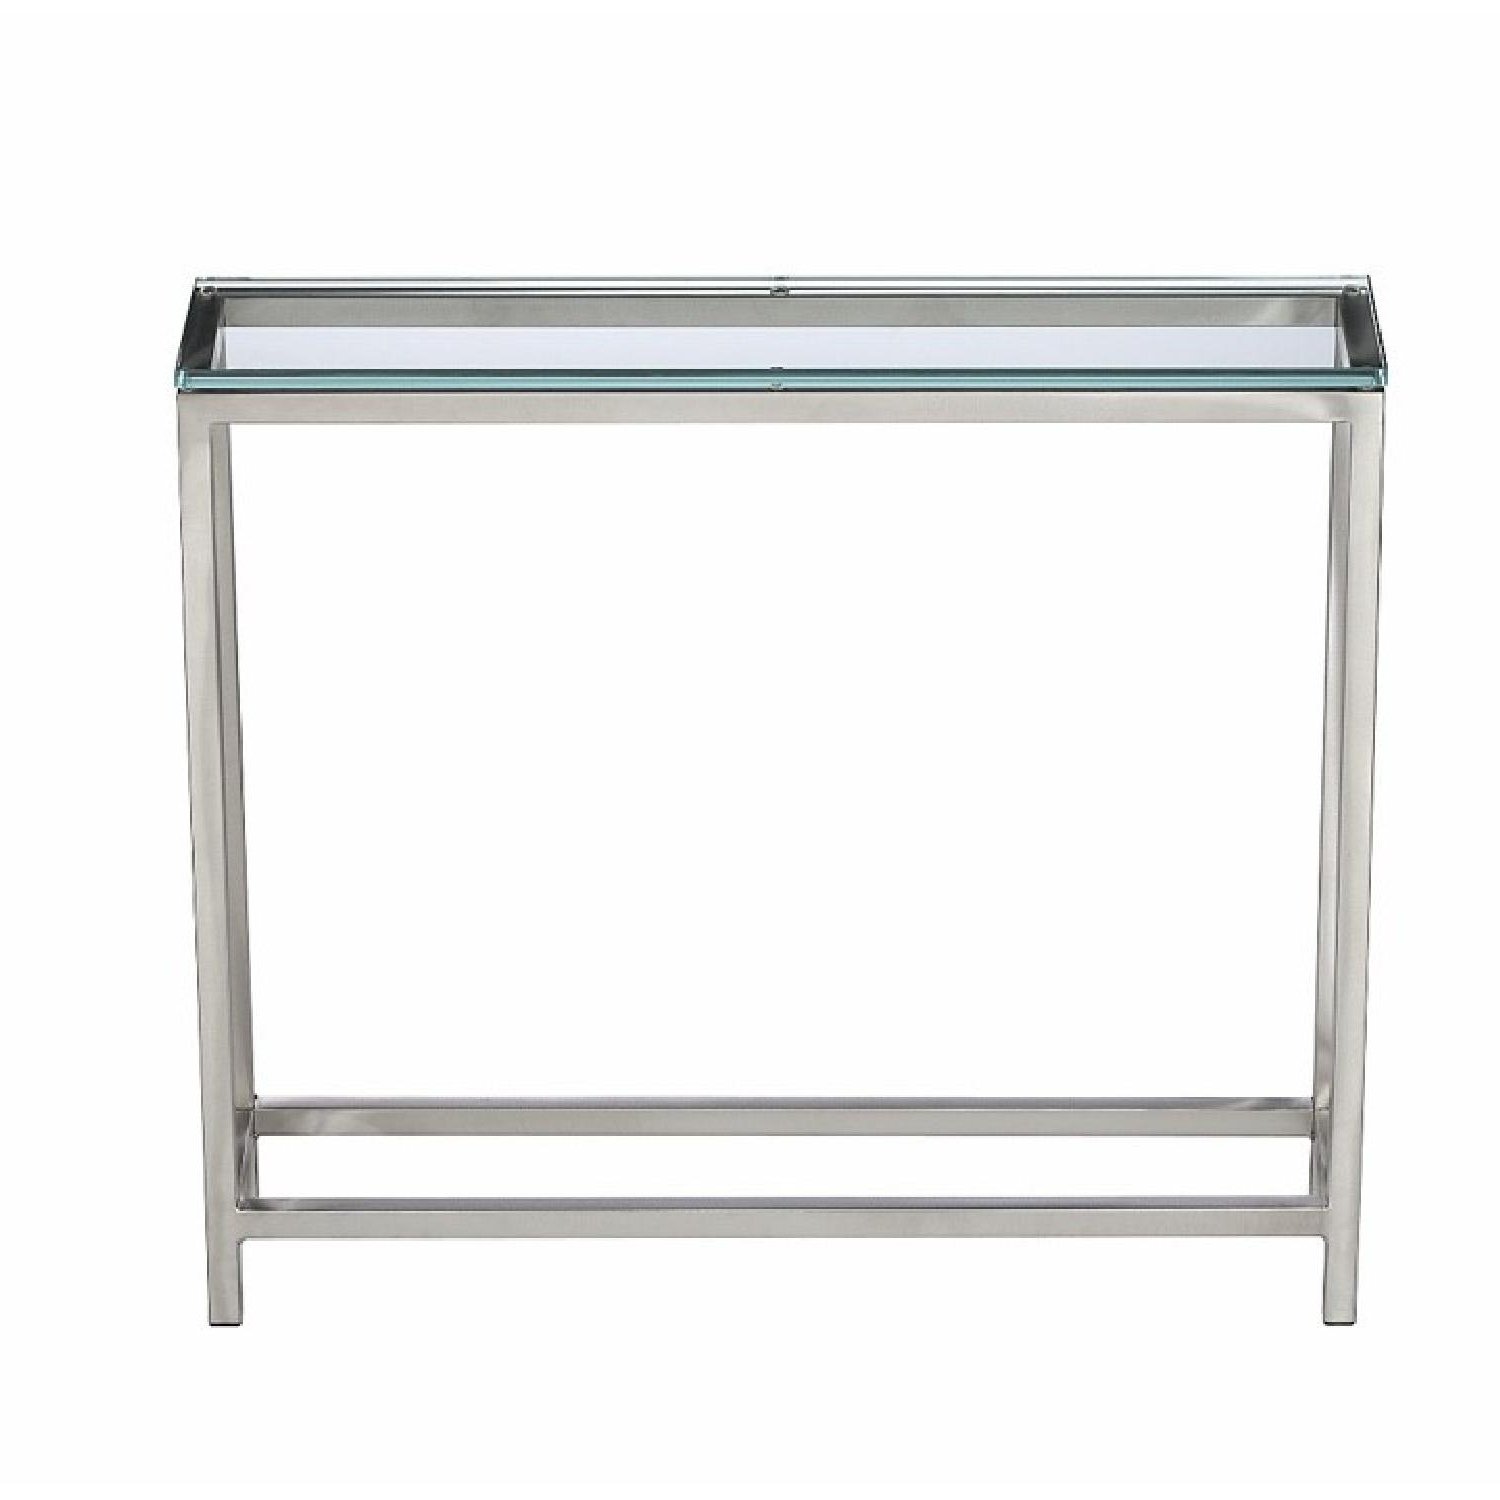 Era Glass Console Tables Within Most Recently Released Crate & Barrel Era Glass Console Table – Aptdeco (View 7 of 20)